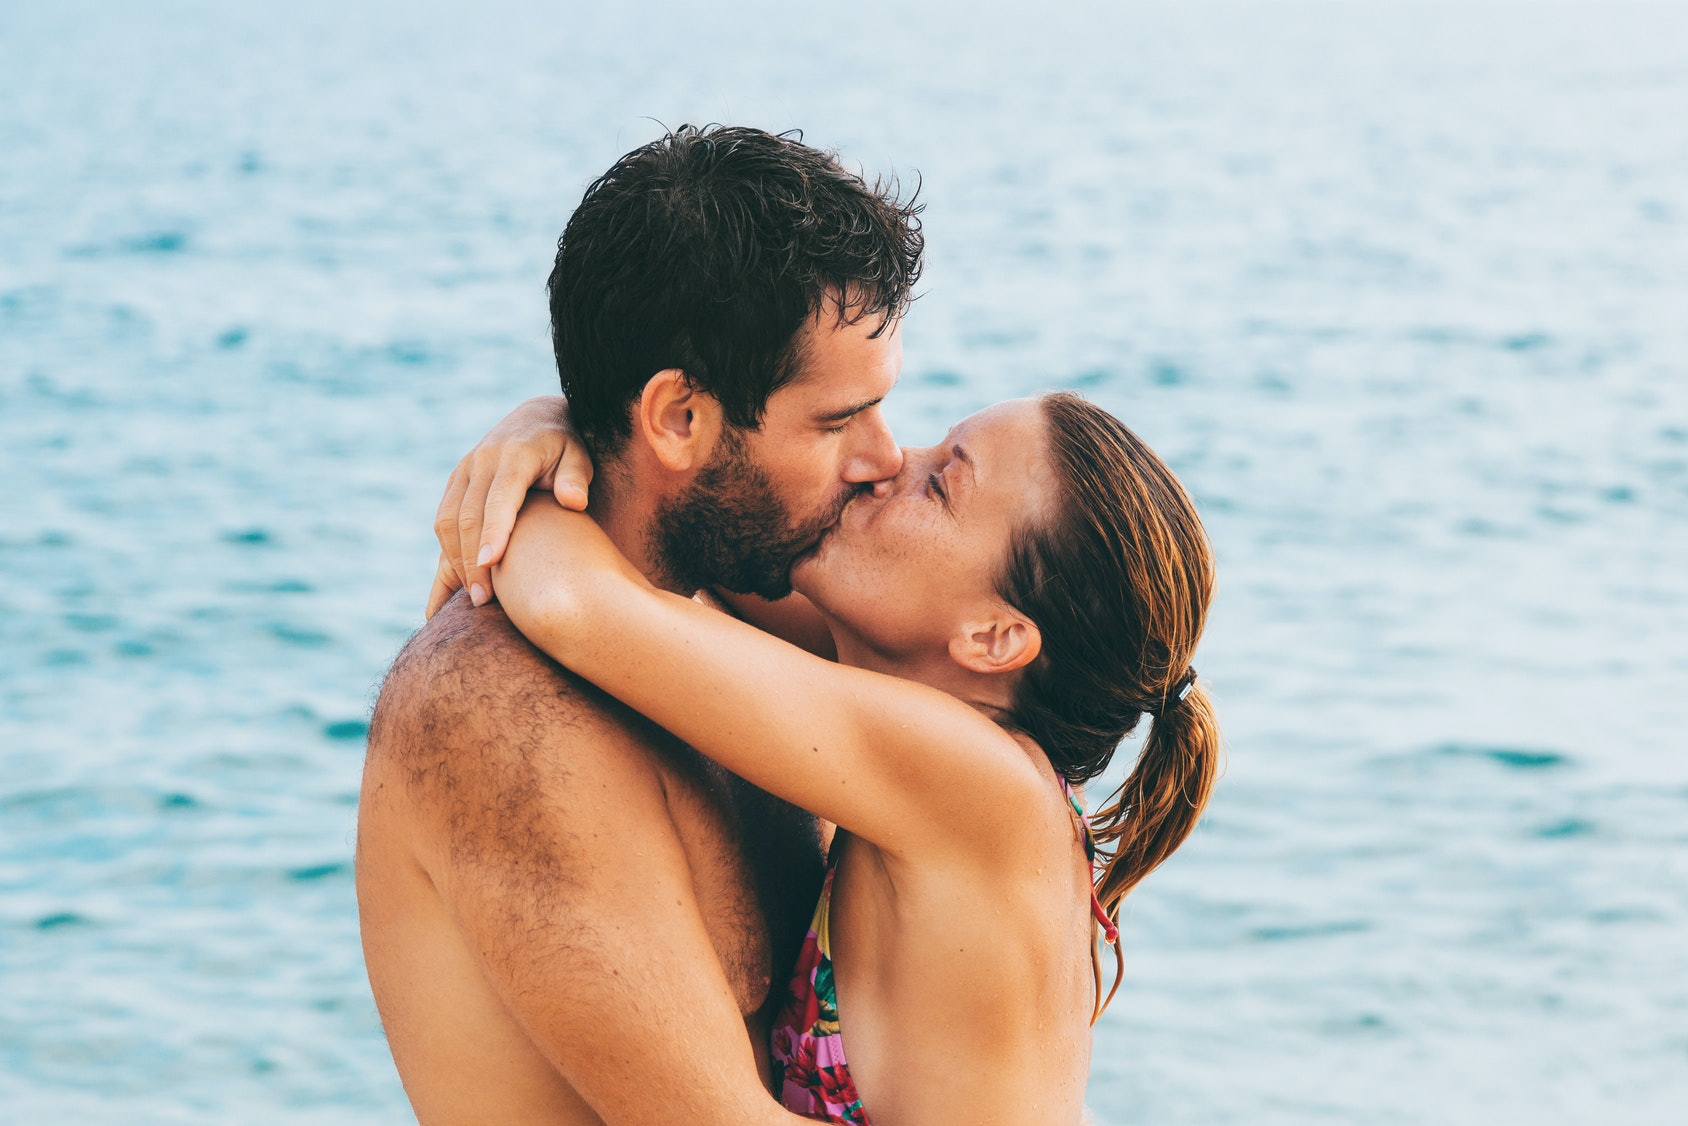 Hookup A Man In Another Country